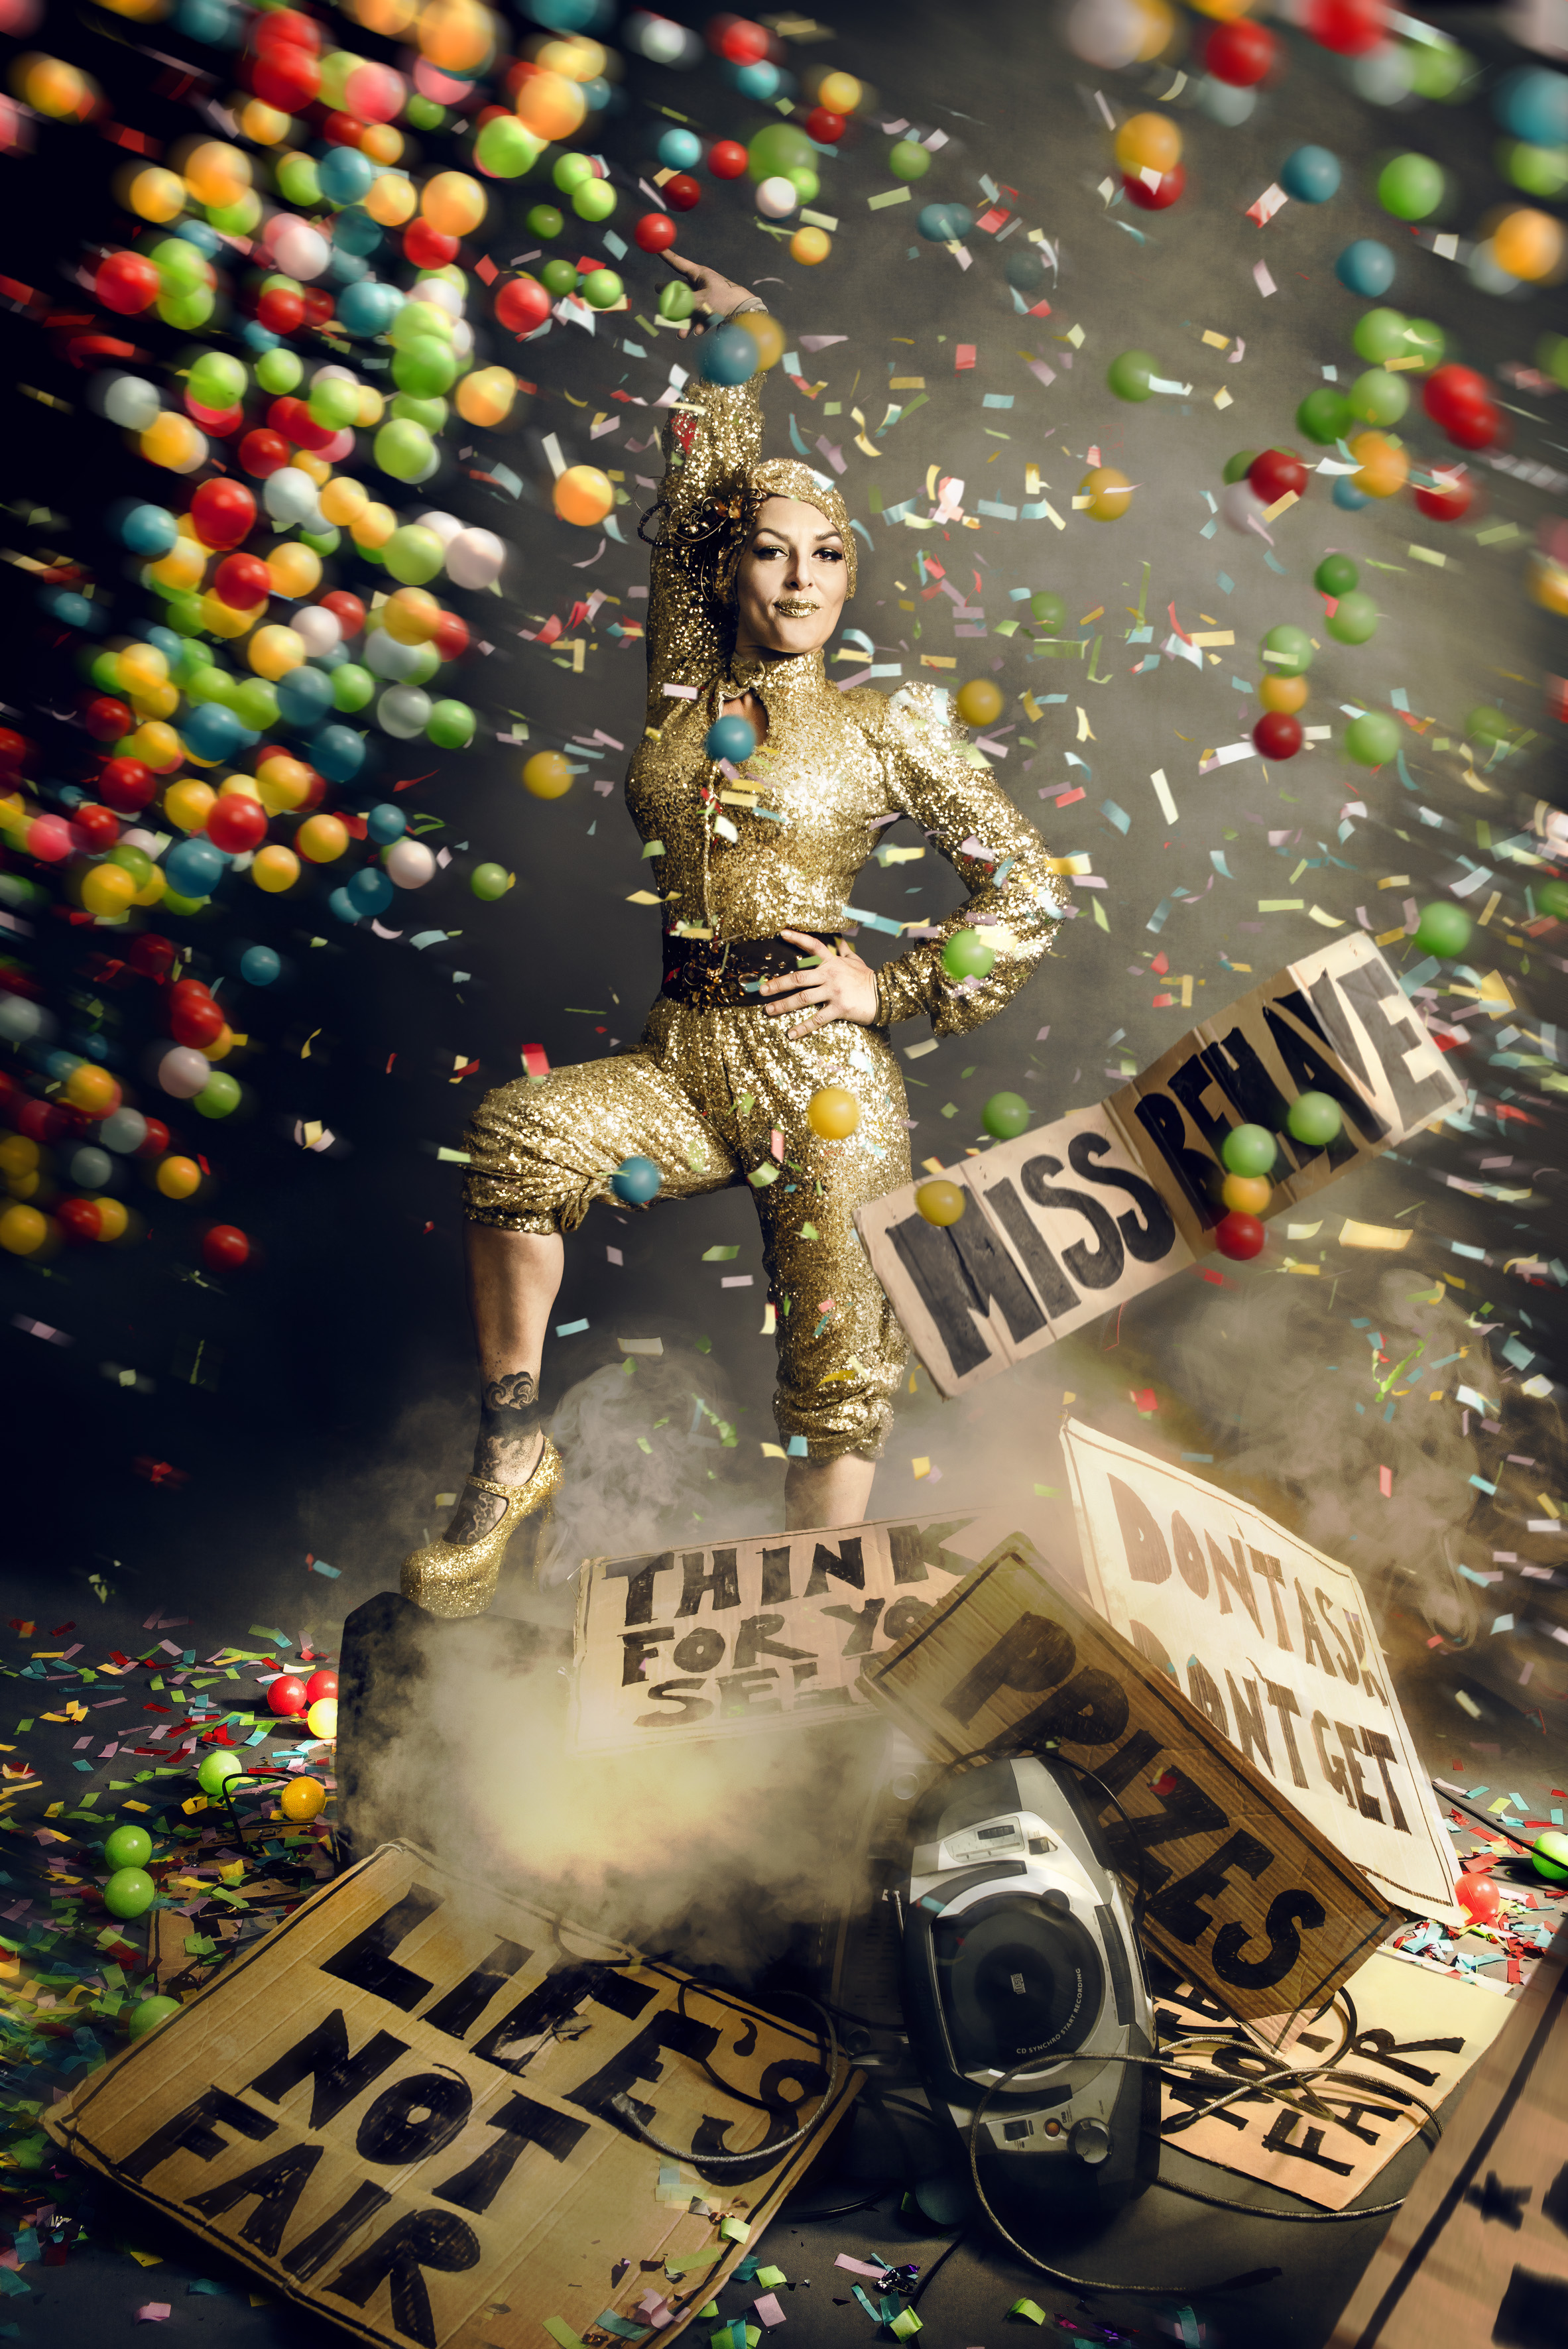 Miss Behave dressed in a shiny jumpsuit, with lots of multi-coloured balls and confetti falling around her.